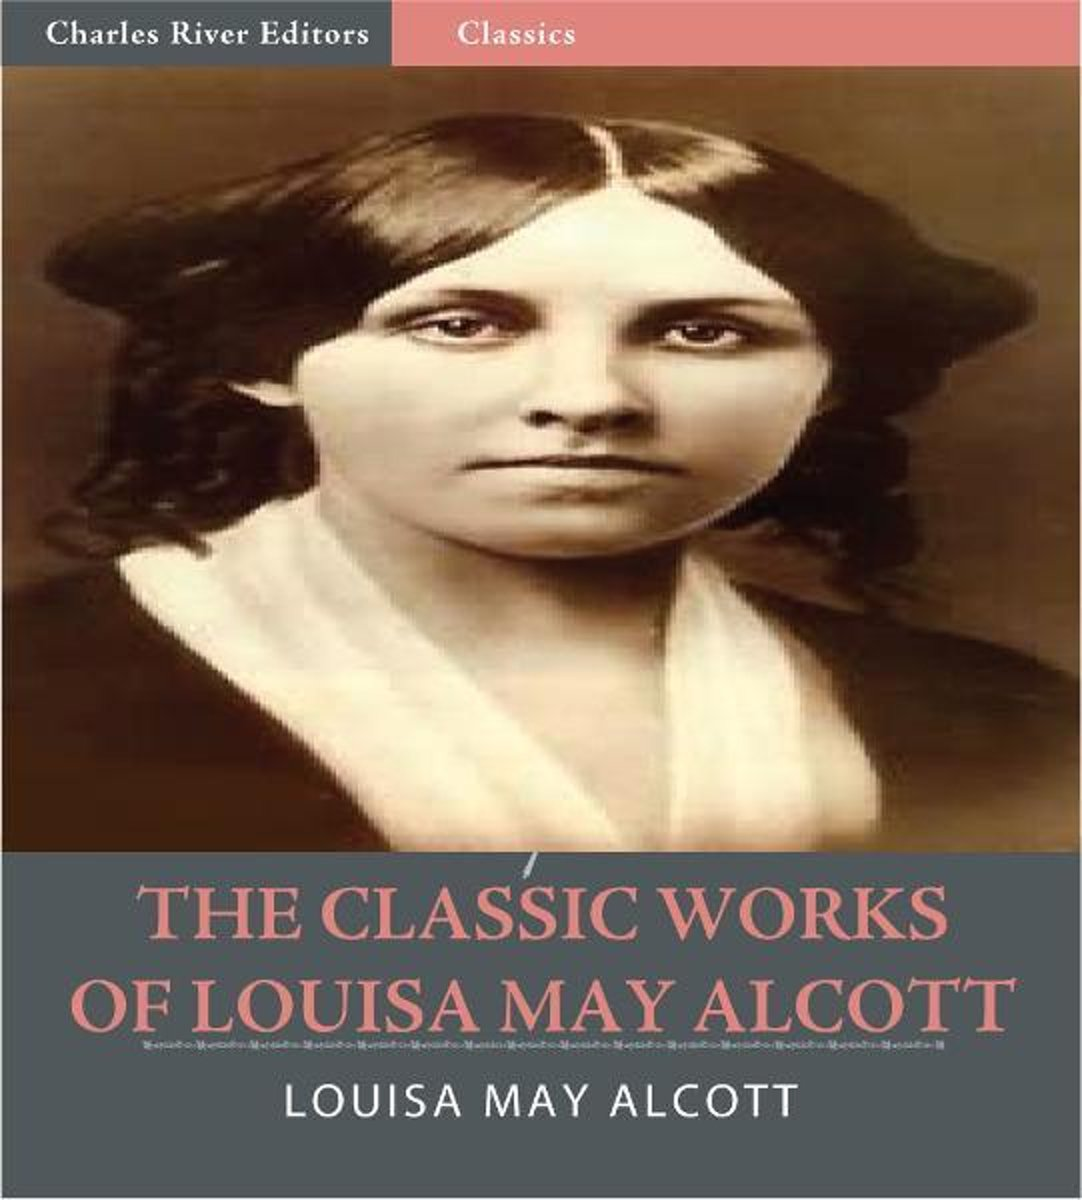 The Classic Works of Louisa May Alcott: The Little Women Series, The Eight Cousins Series and 17 Other Novels and Short Stories (Illustrated Edition)